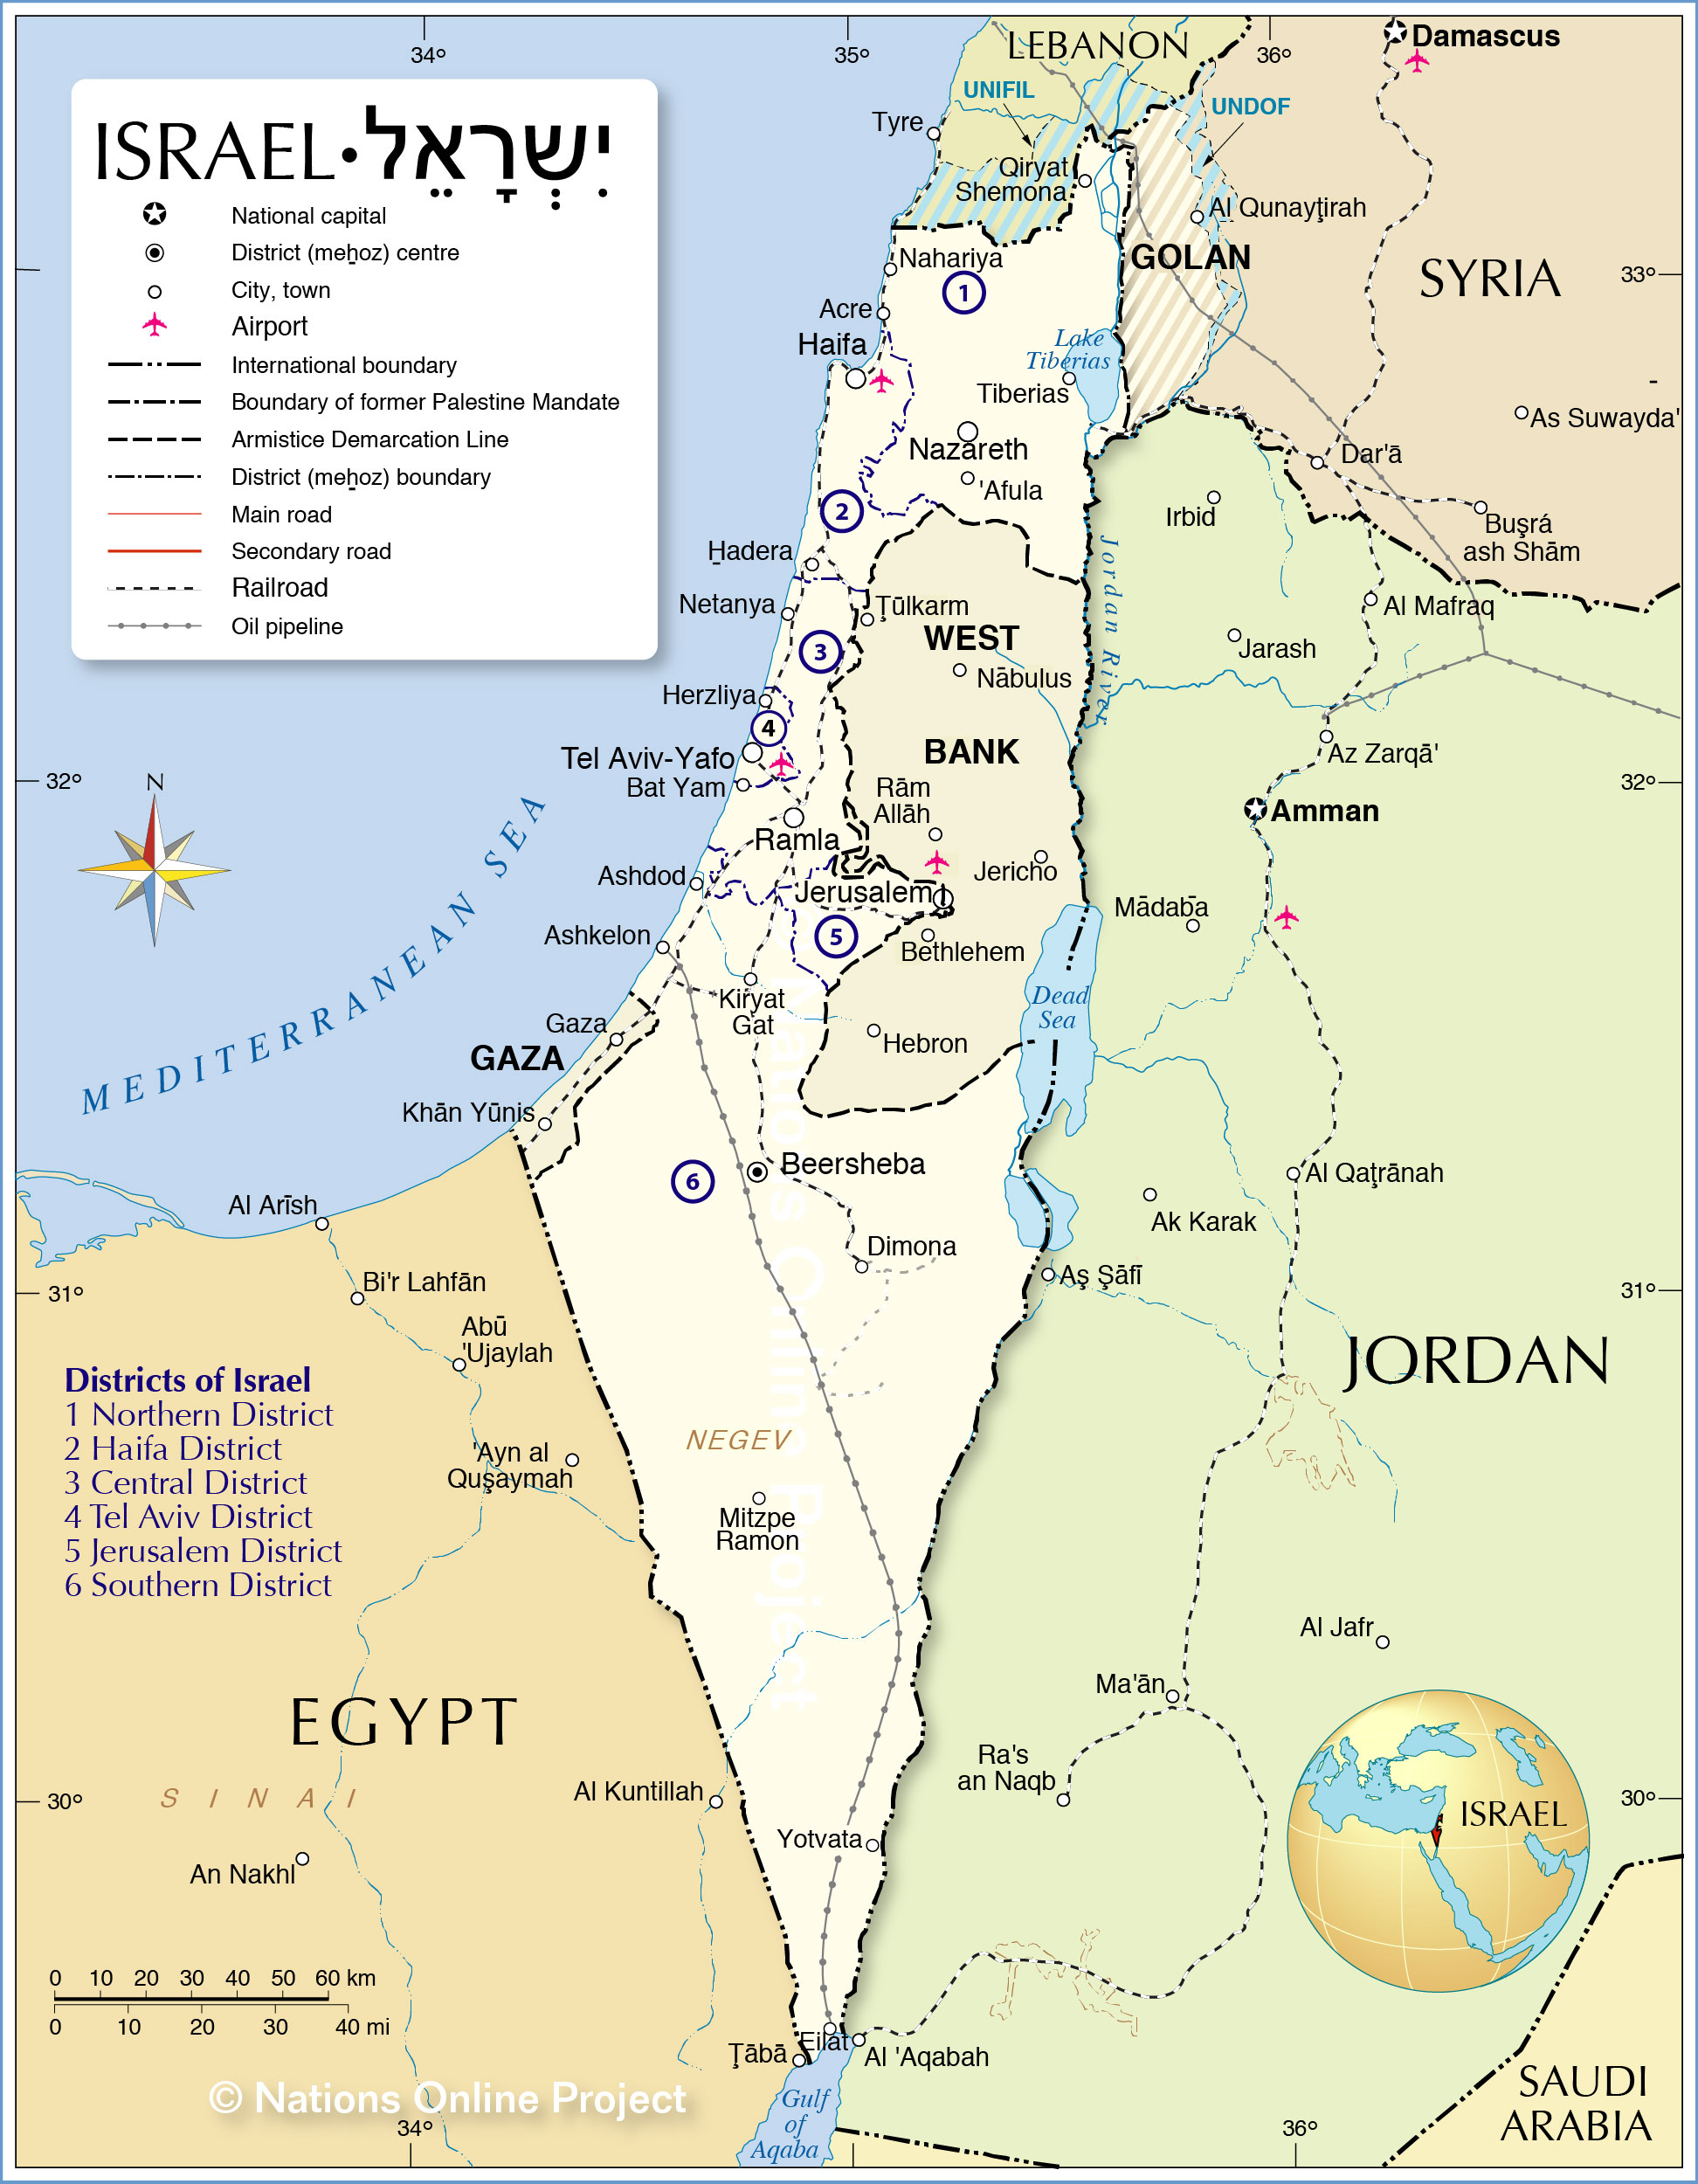 Administrative Map Of Israel Nations Online Project - Israel maps